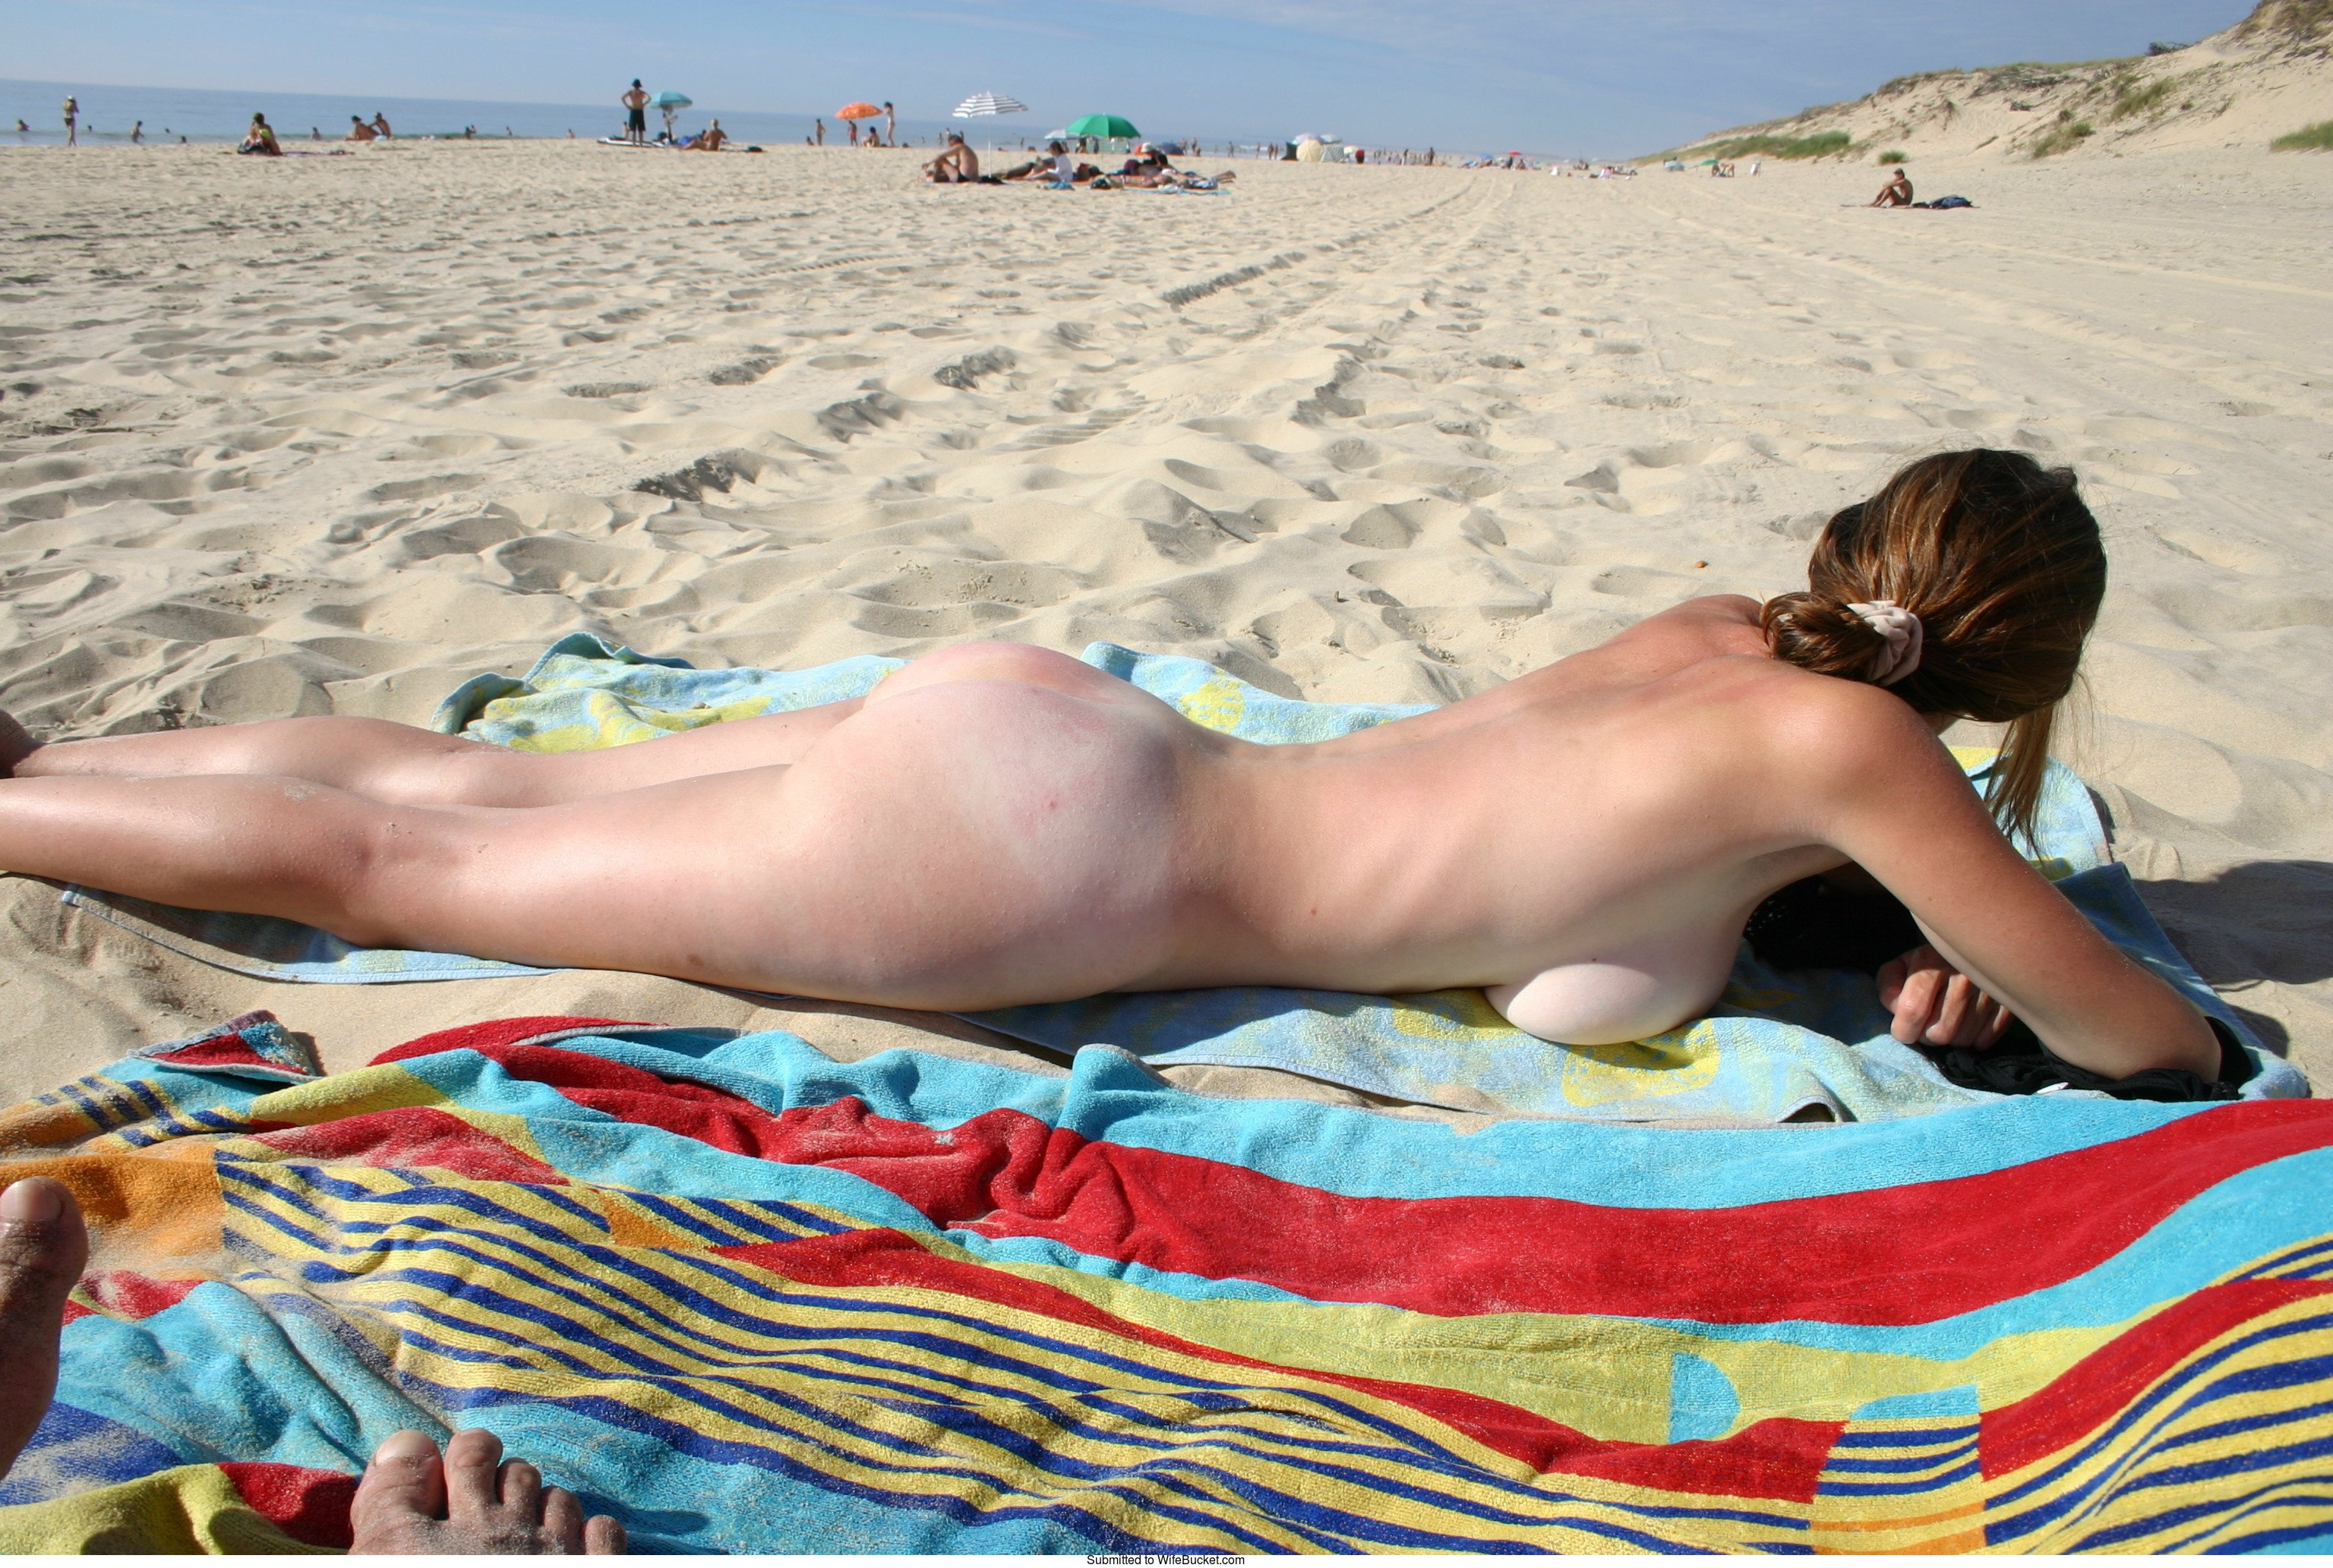 My Wife On A Nudist Beach - Sex Photo-8116